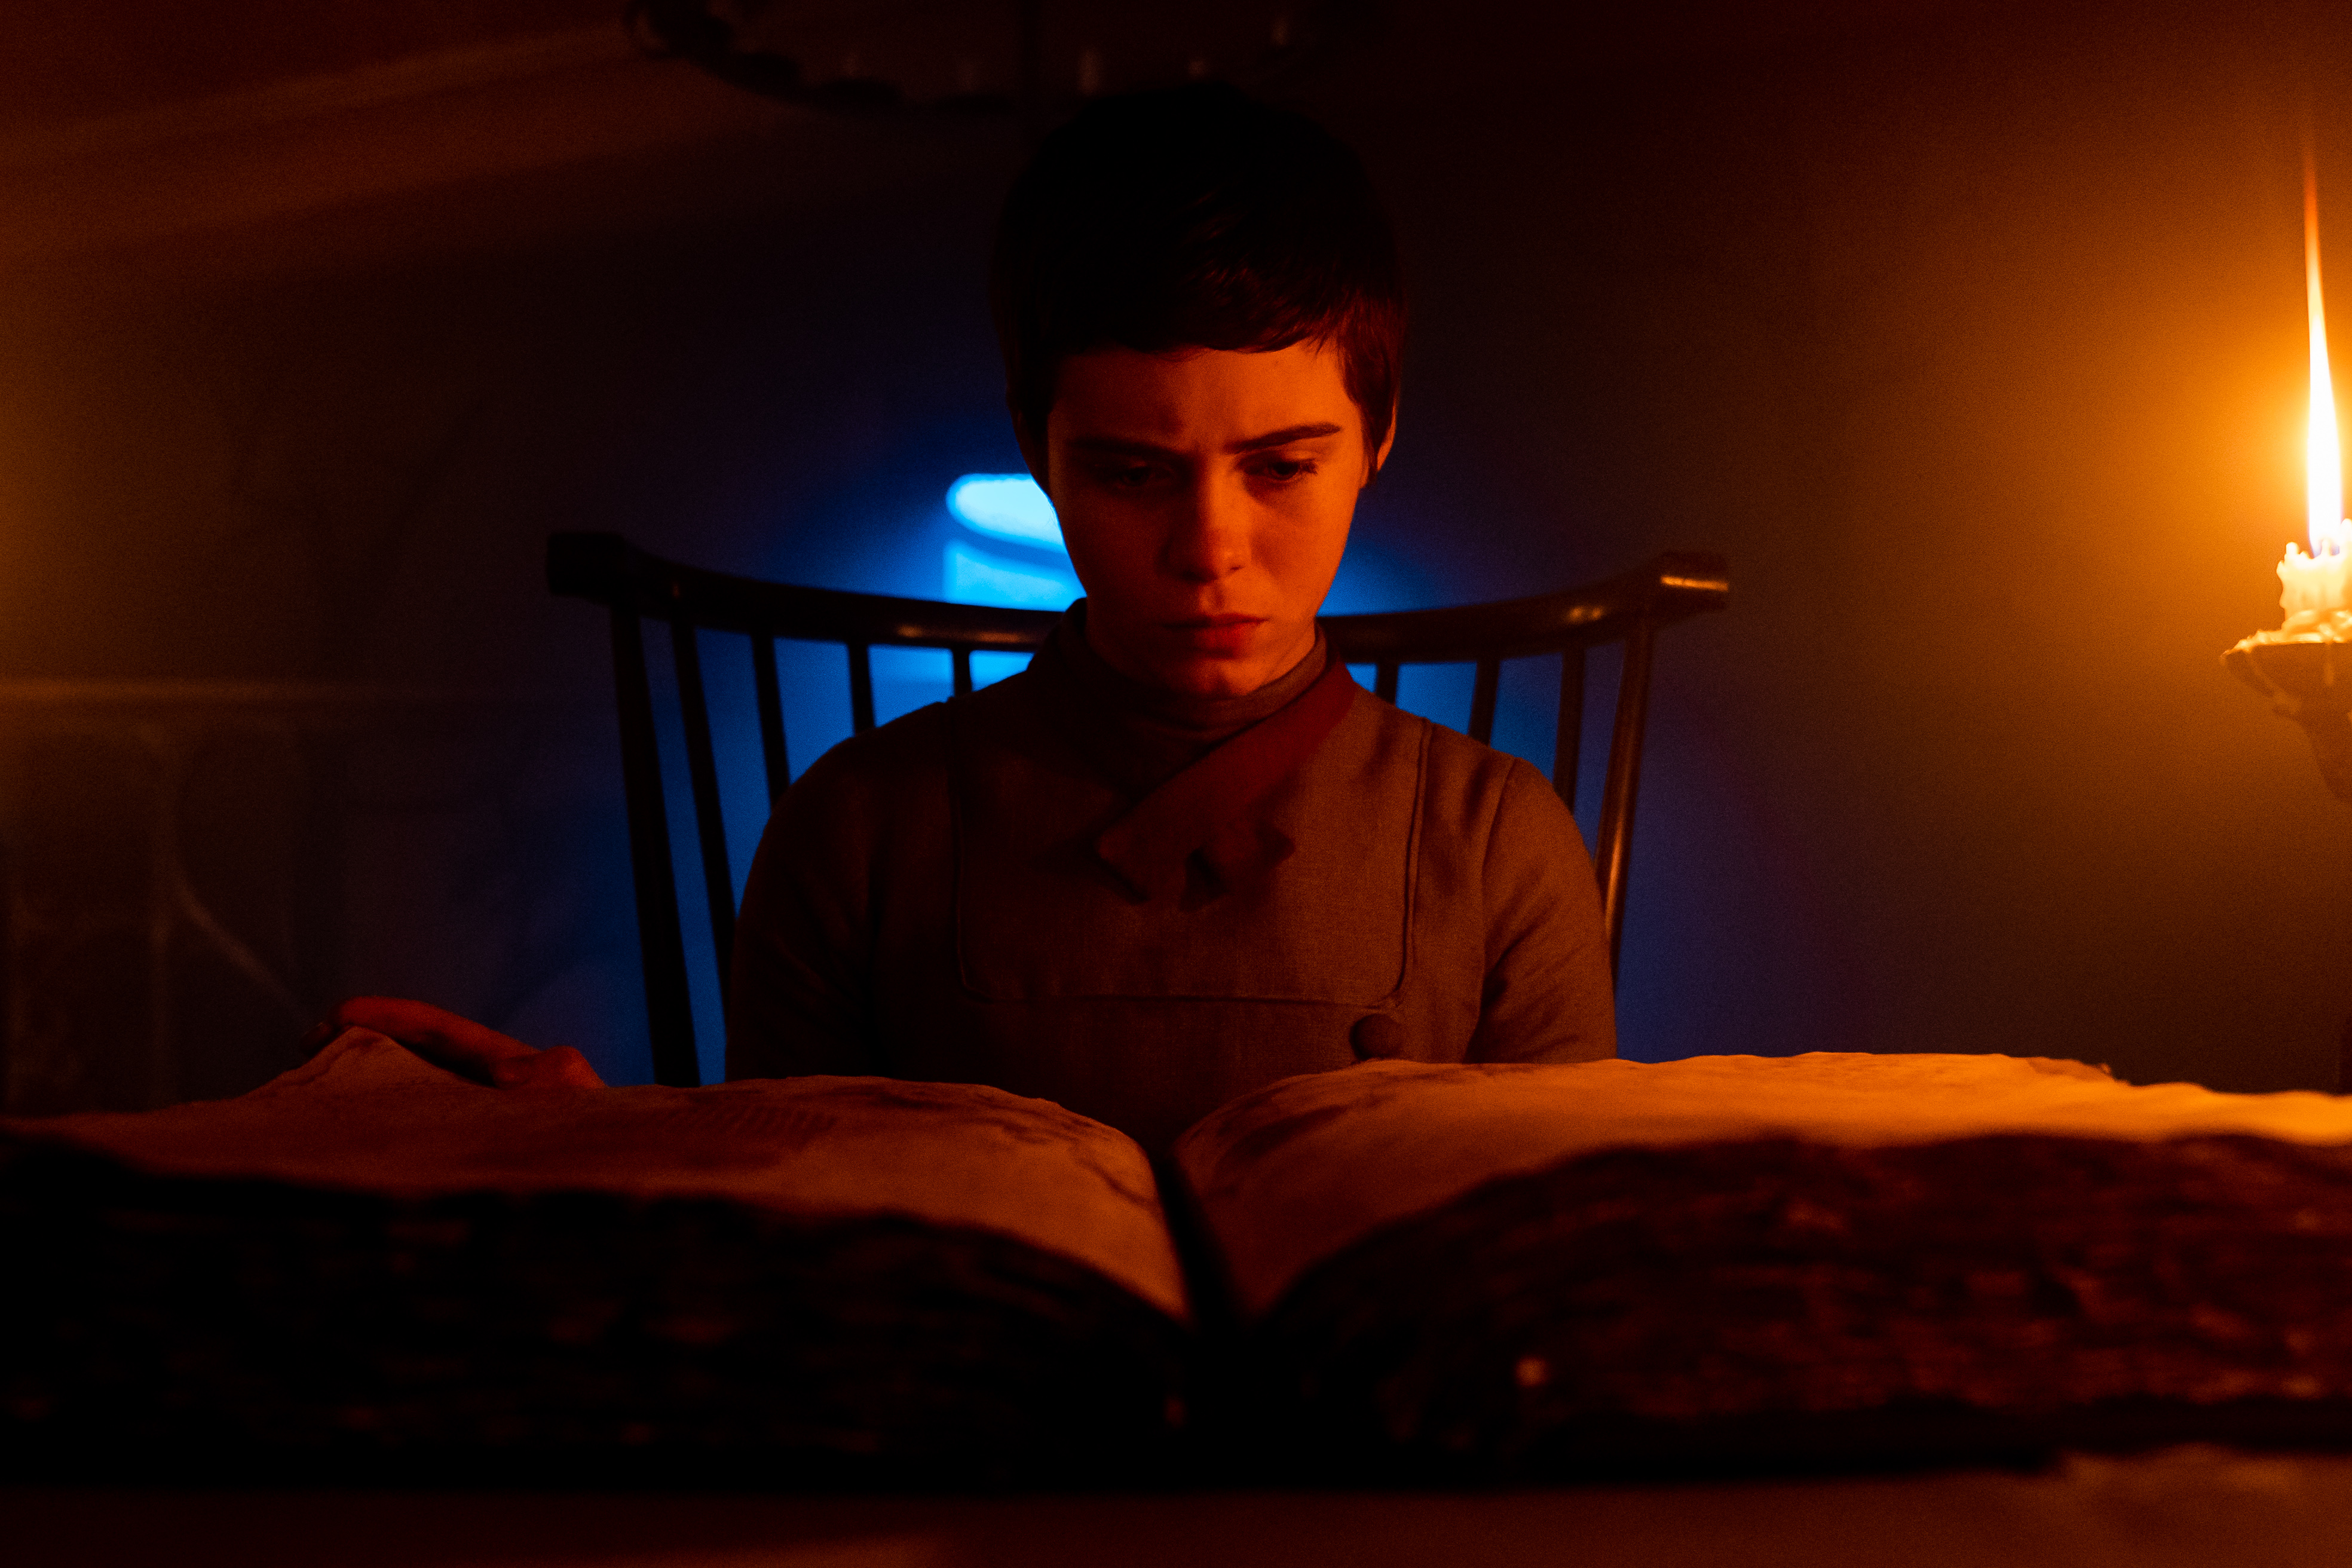 a young woman with short dark hair looks over a book in a dim, red-lit room that turns her face the color of blood in Gretel & Hansel